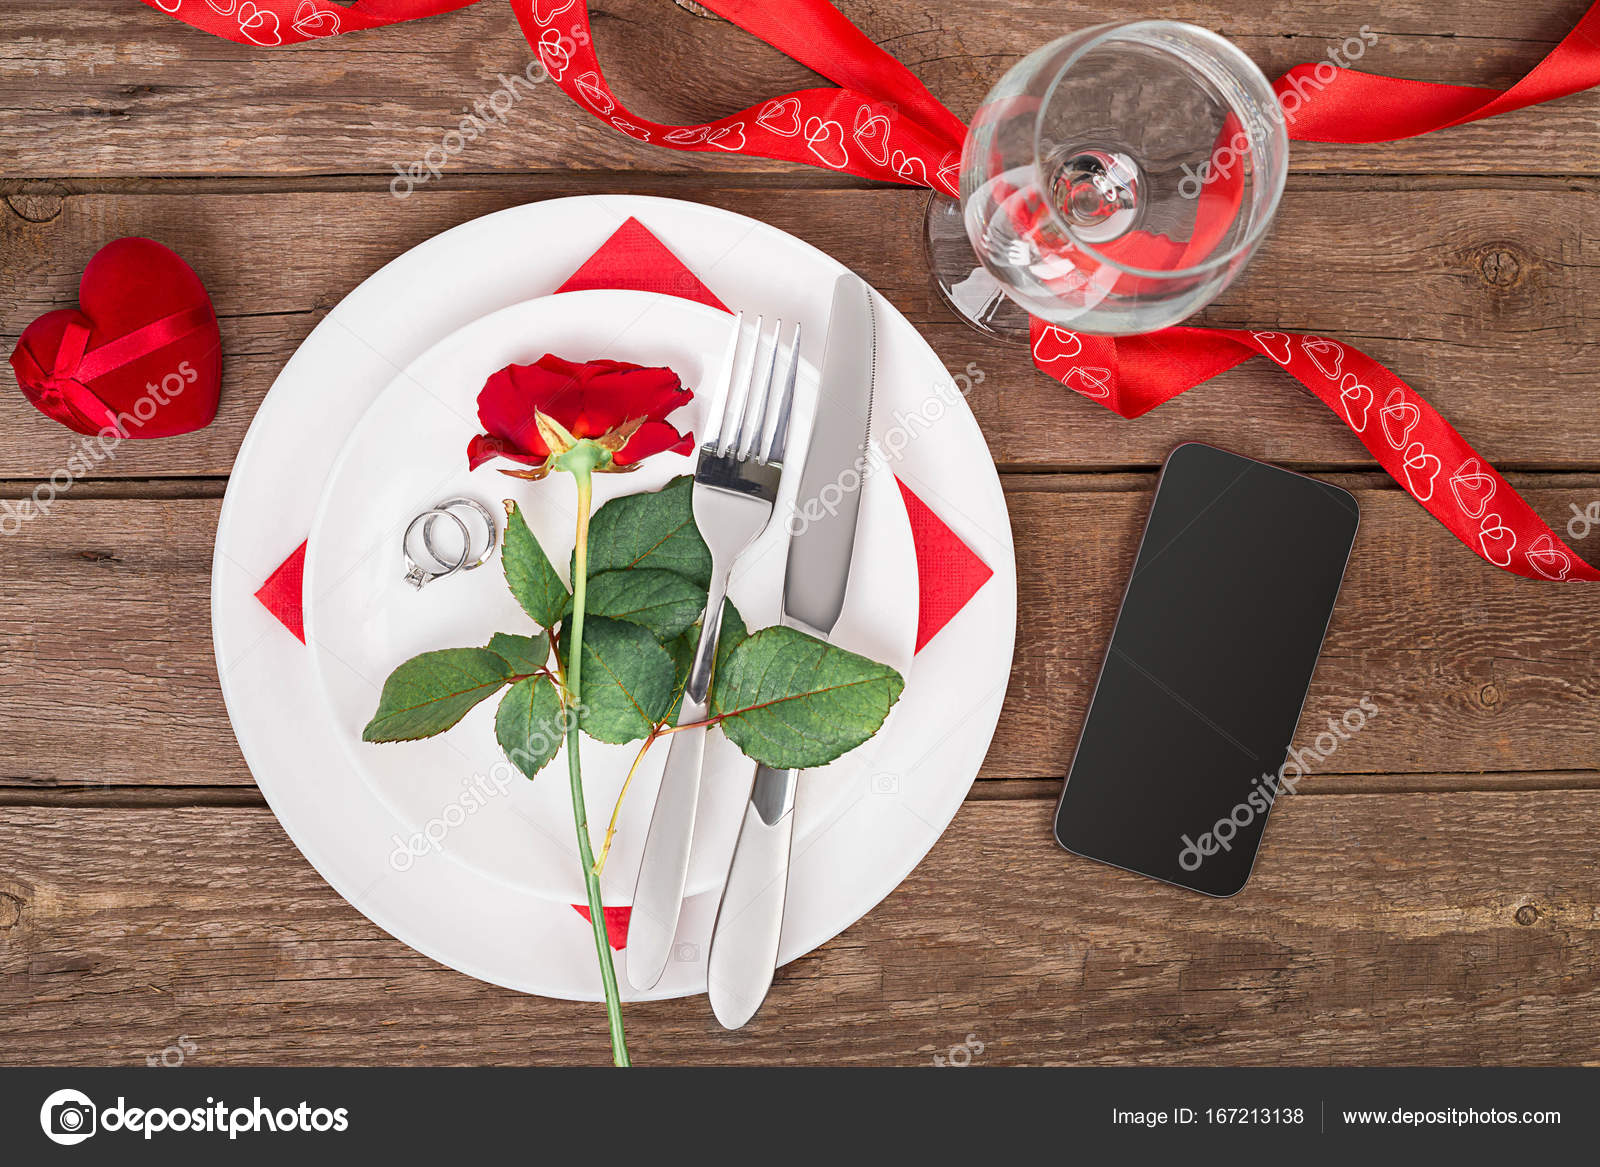 Valentines Day Dinner Table Setting With Red Ribbon Rose Knife And